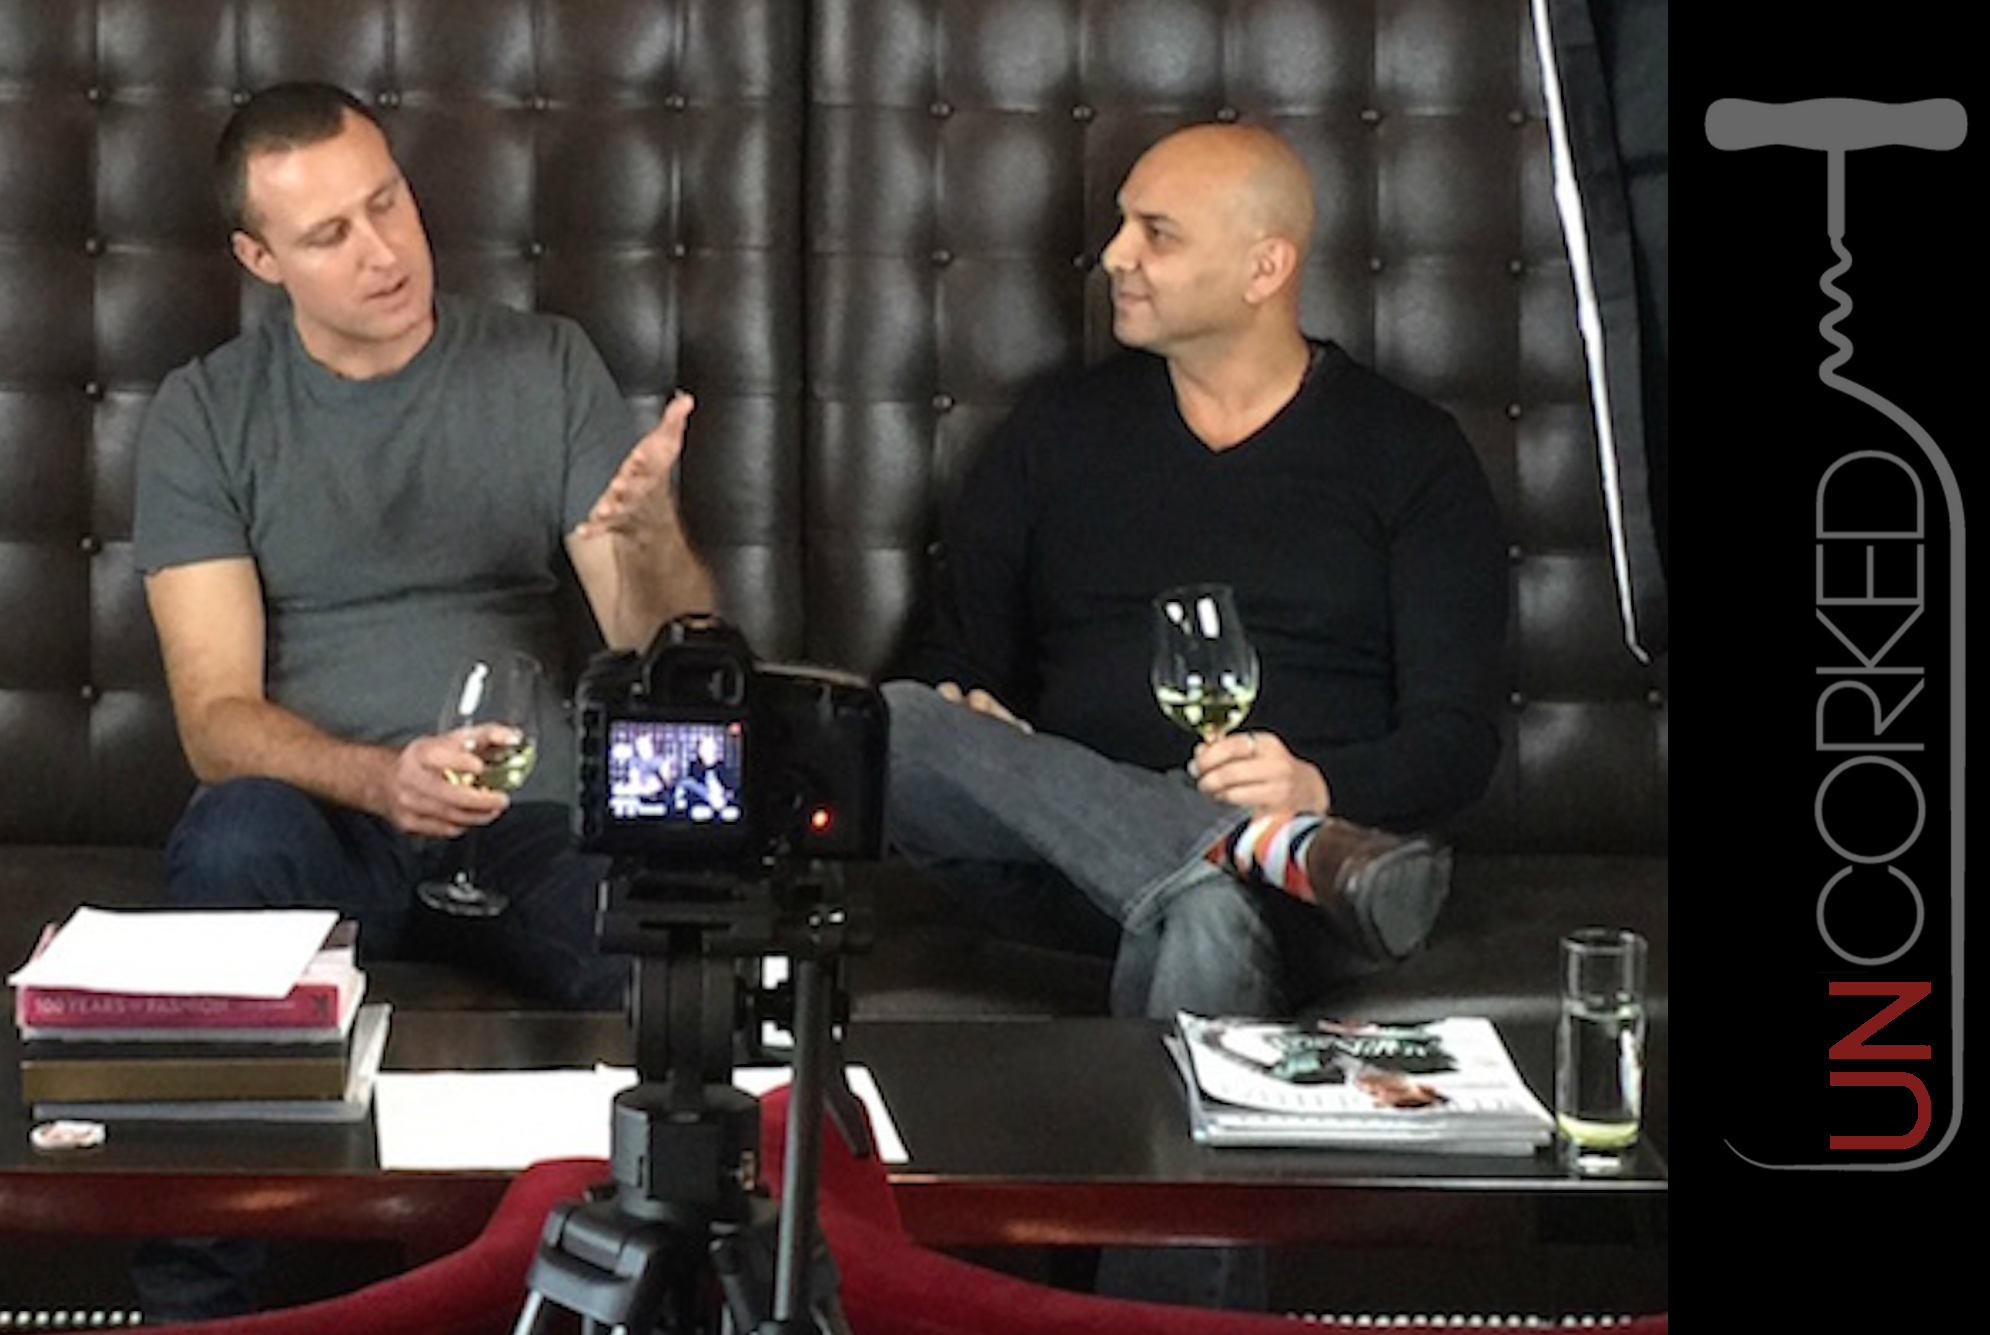 Introducing: UnCorked Episode 1 – Uncensored, In-Depth Startup Founders Interviews